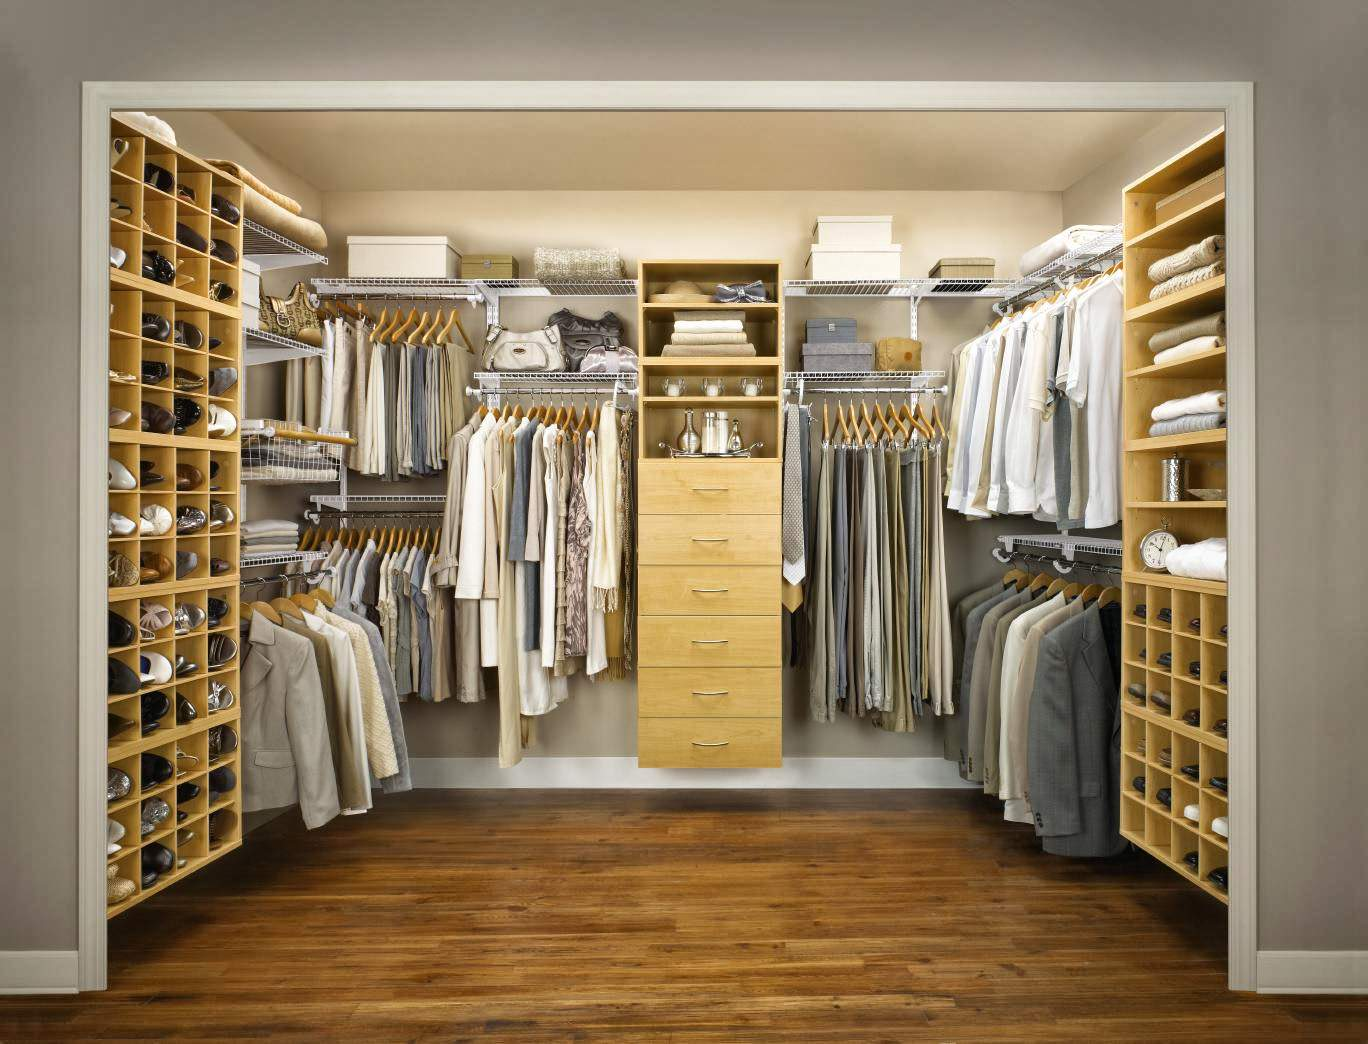 master-bedroom-closet-ideas-bedroom-design-ideas-throughout-15-master-bedroom-closet-design.jpg